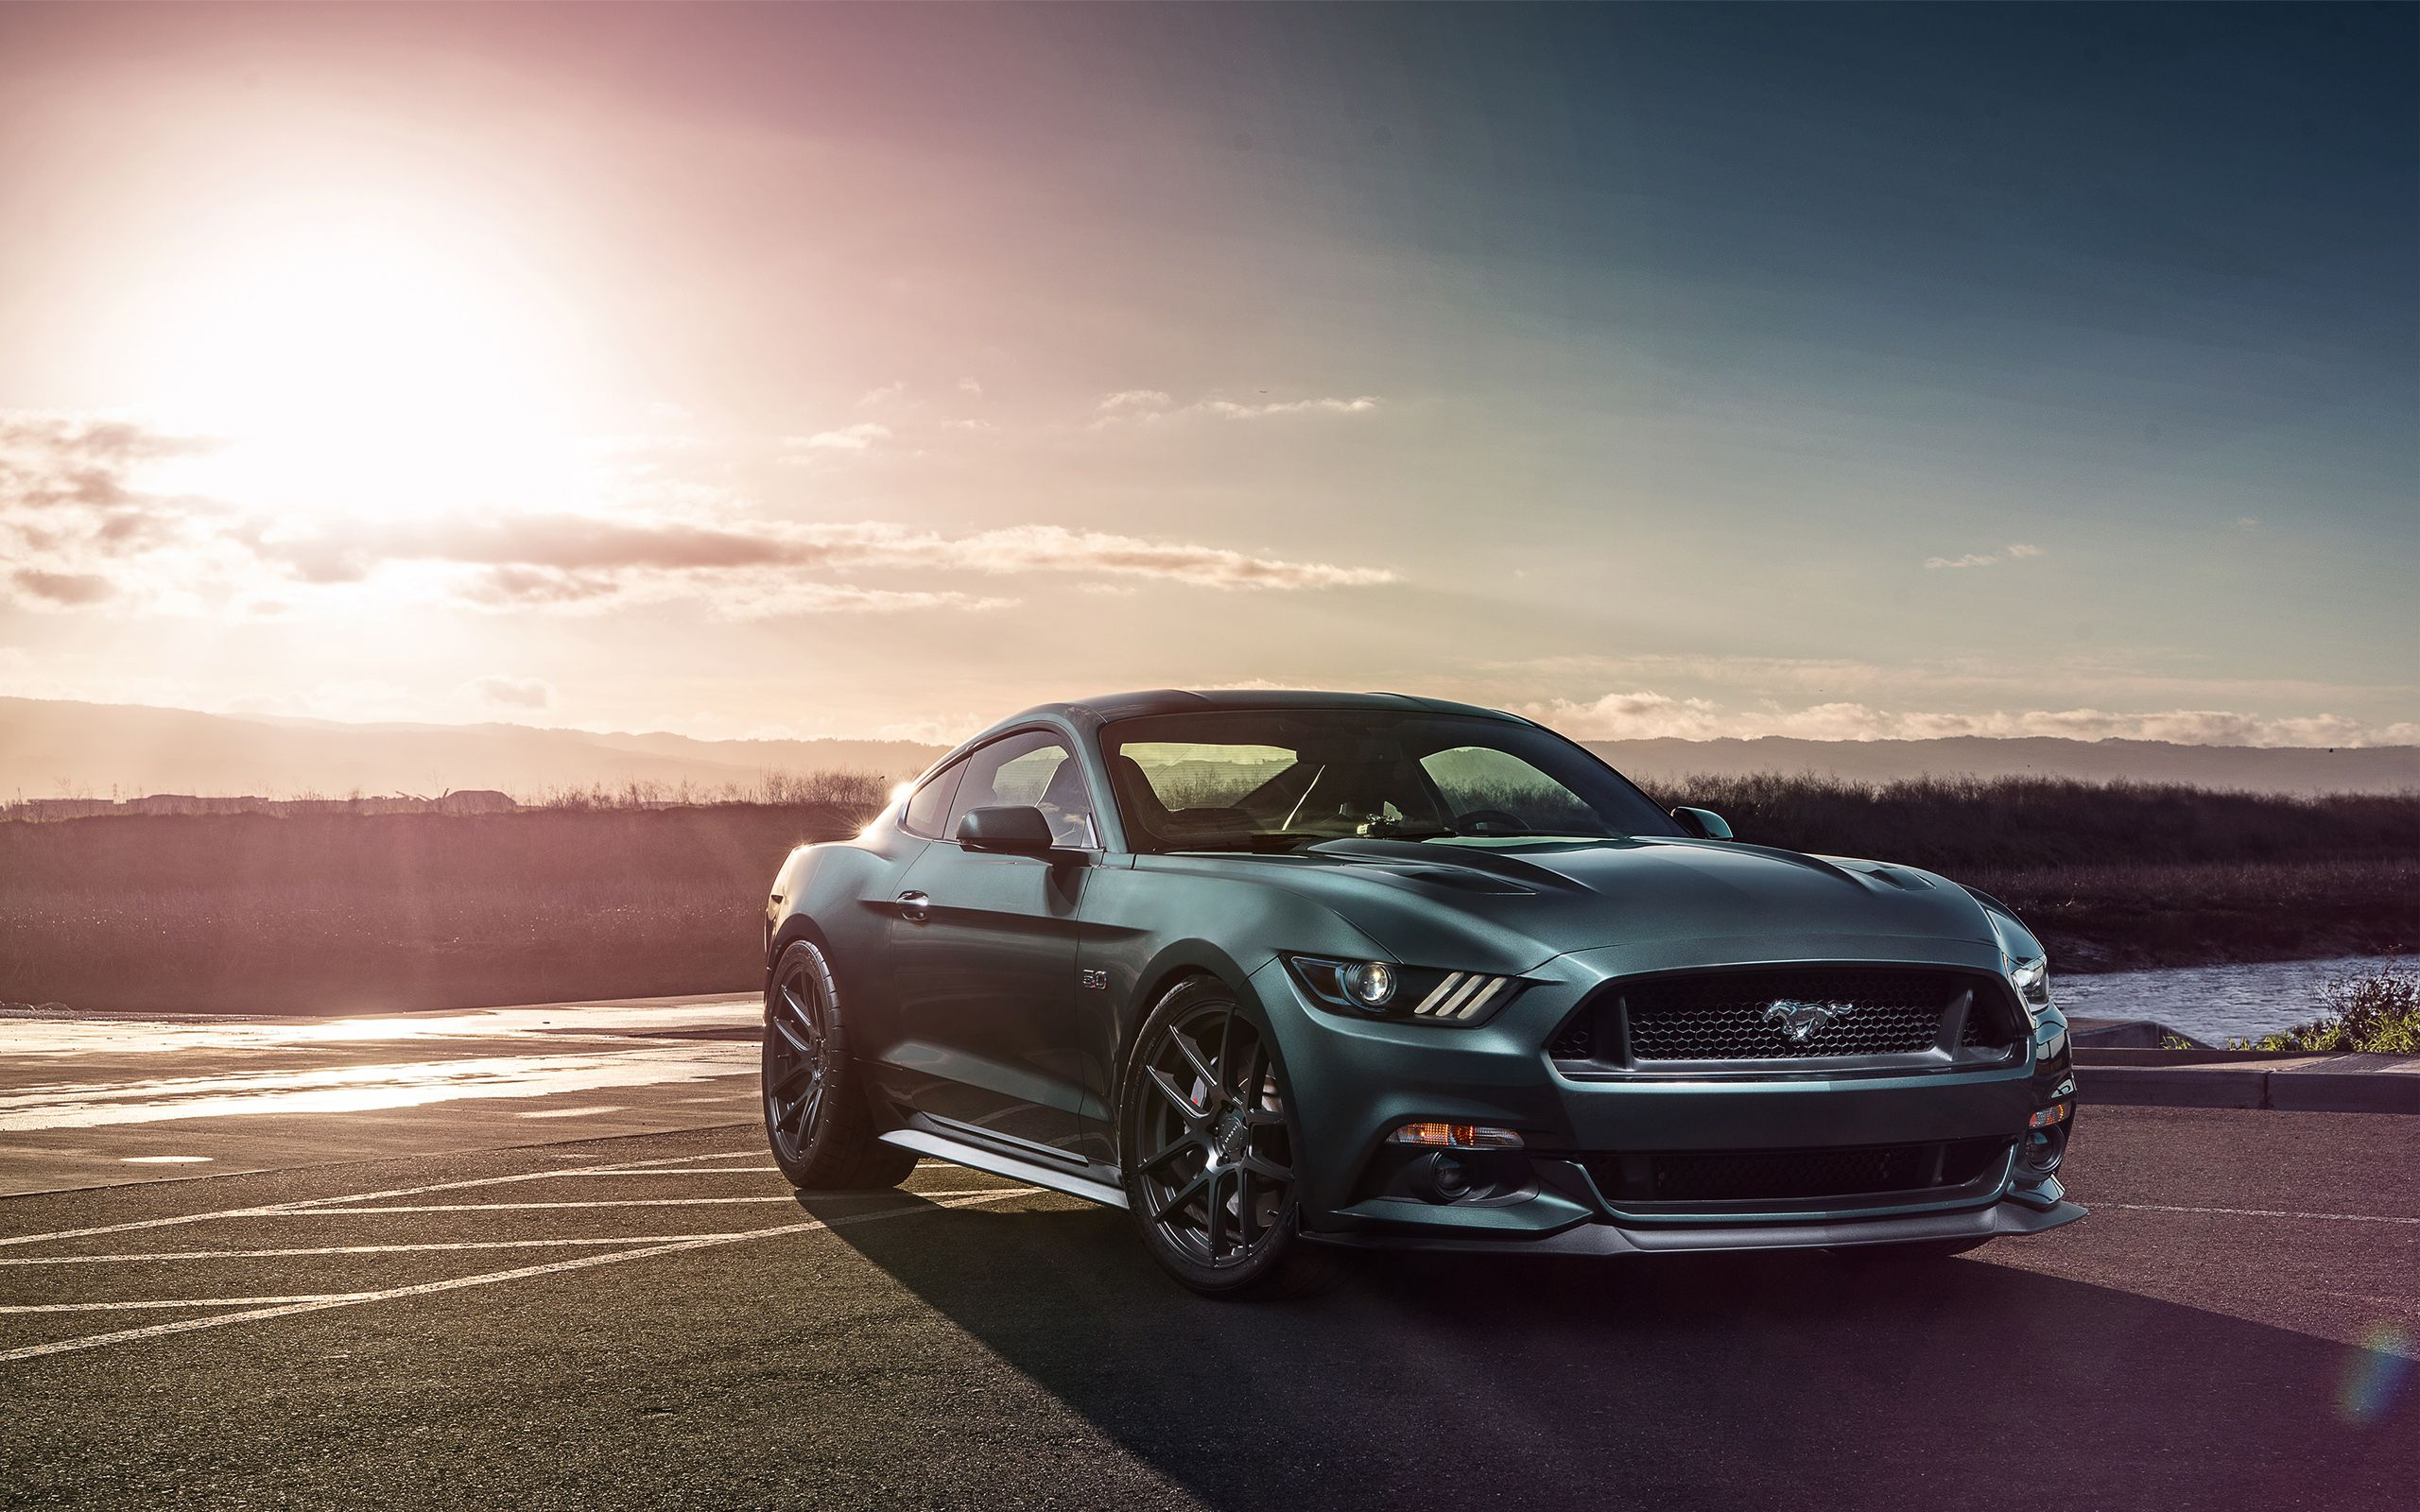 Ford Mustang Gt Wallpaper Mobile